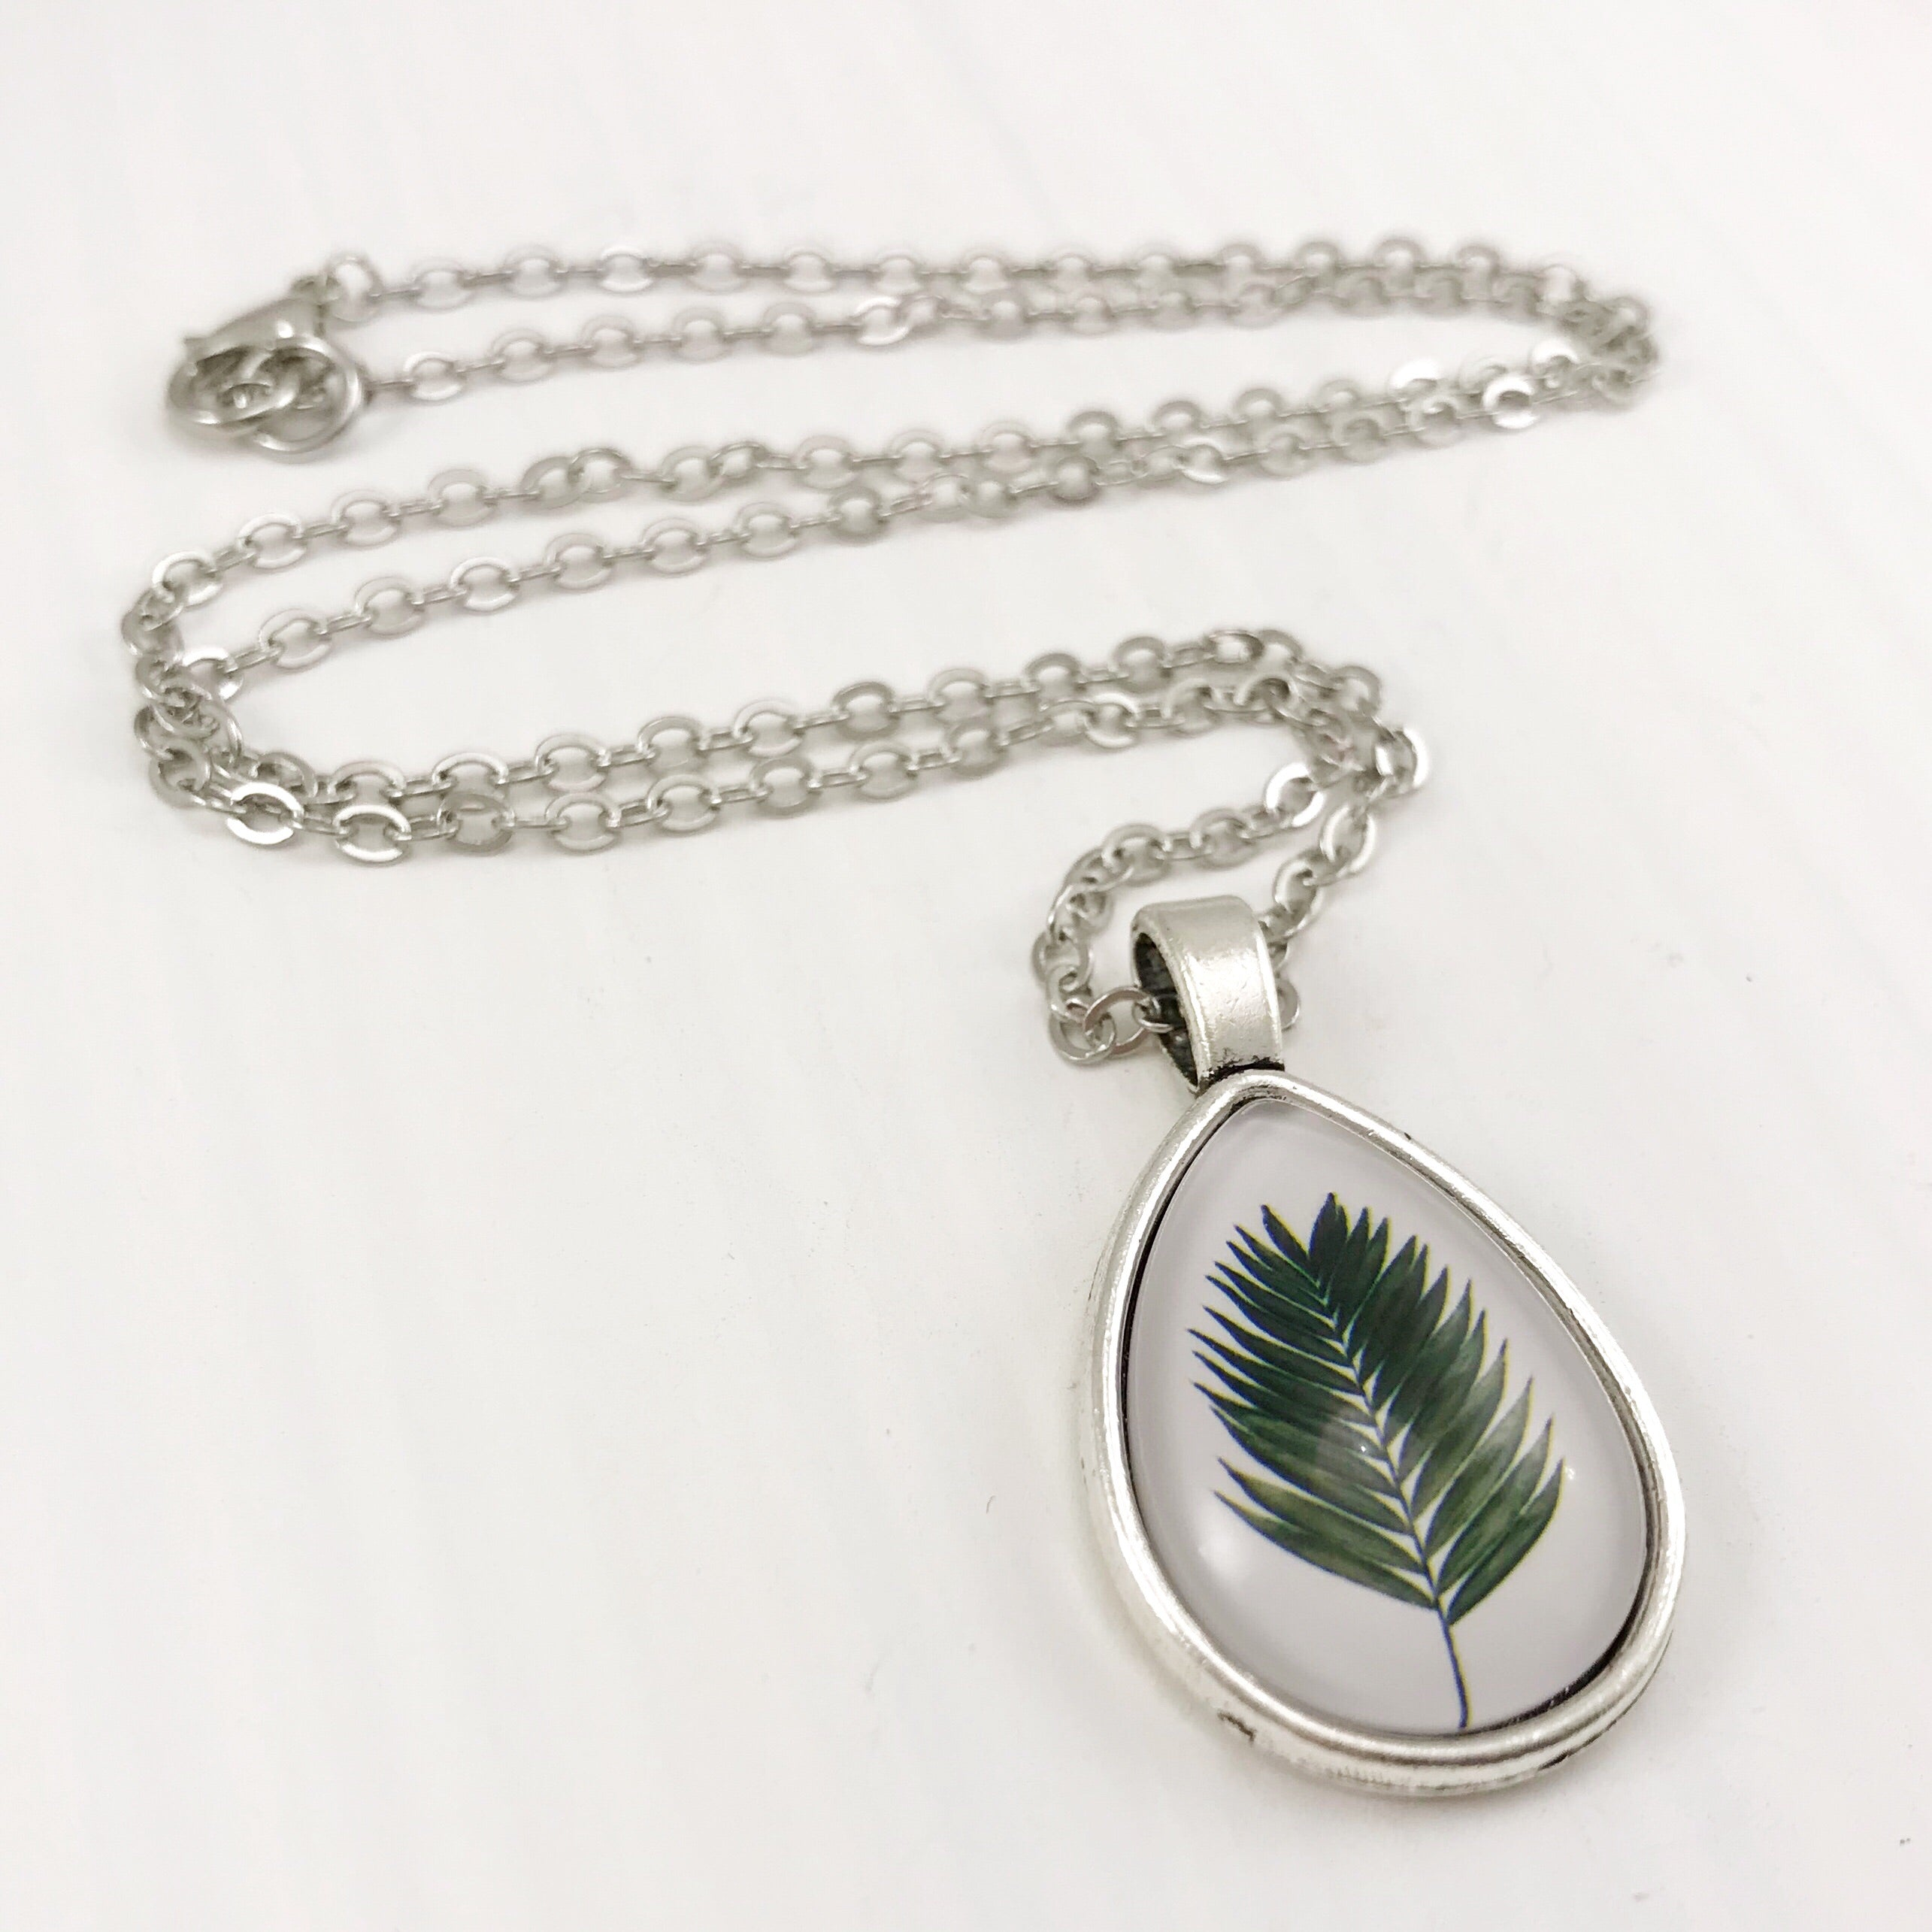 Fern Teardrop Necklace - Antique Silver